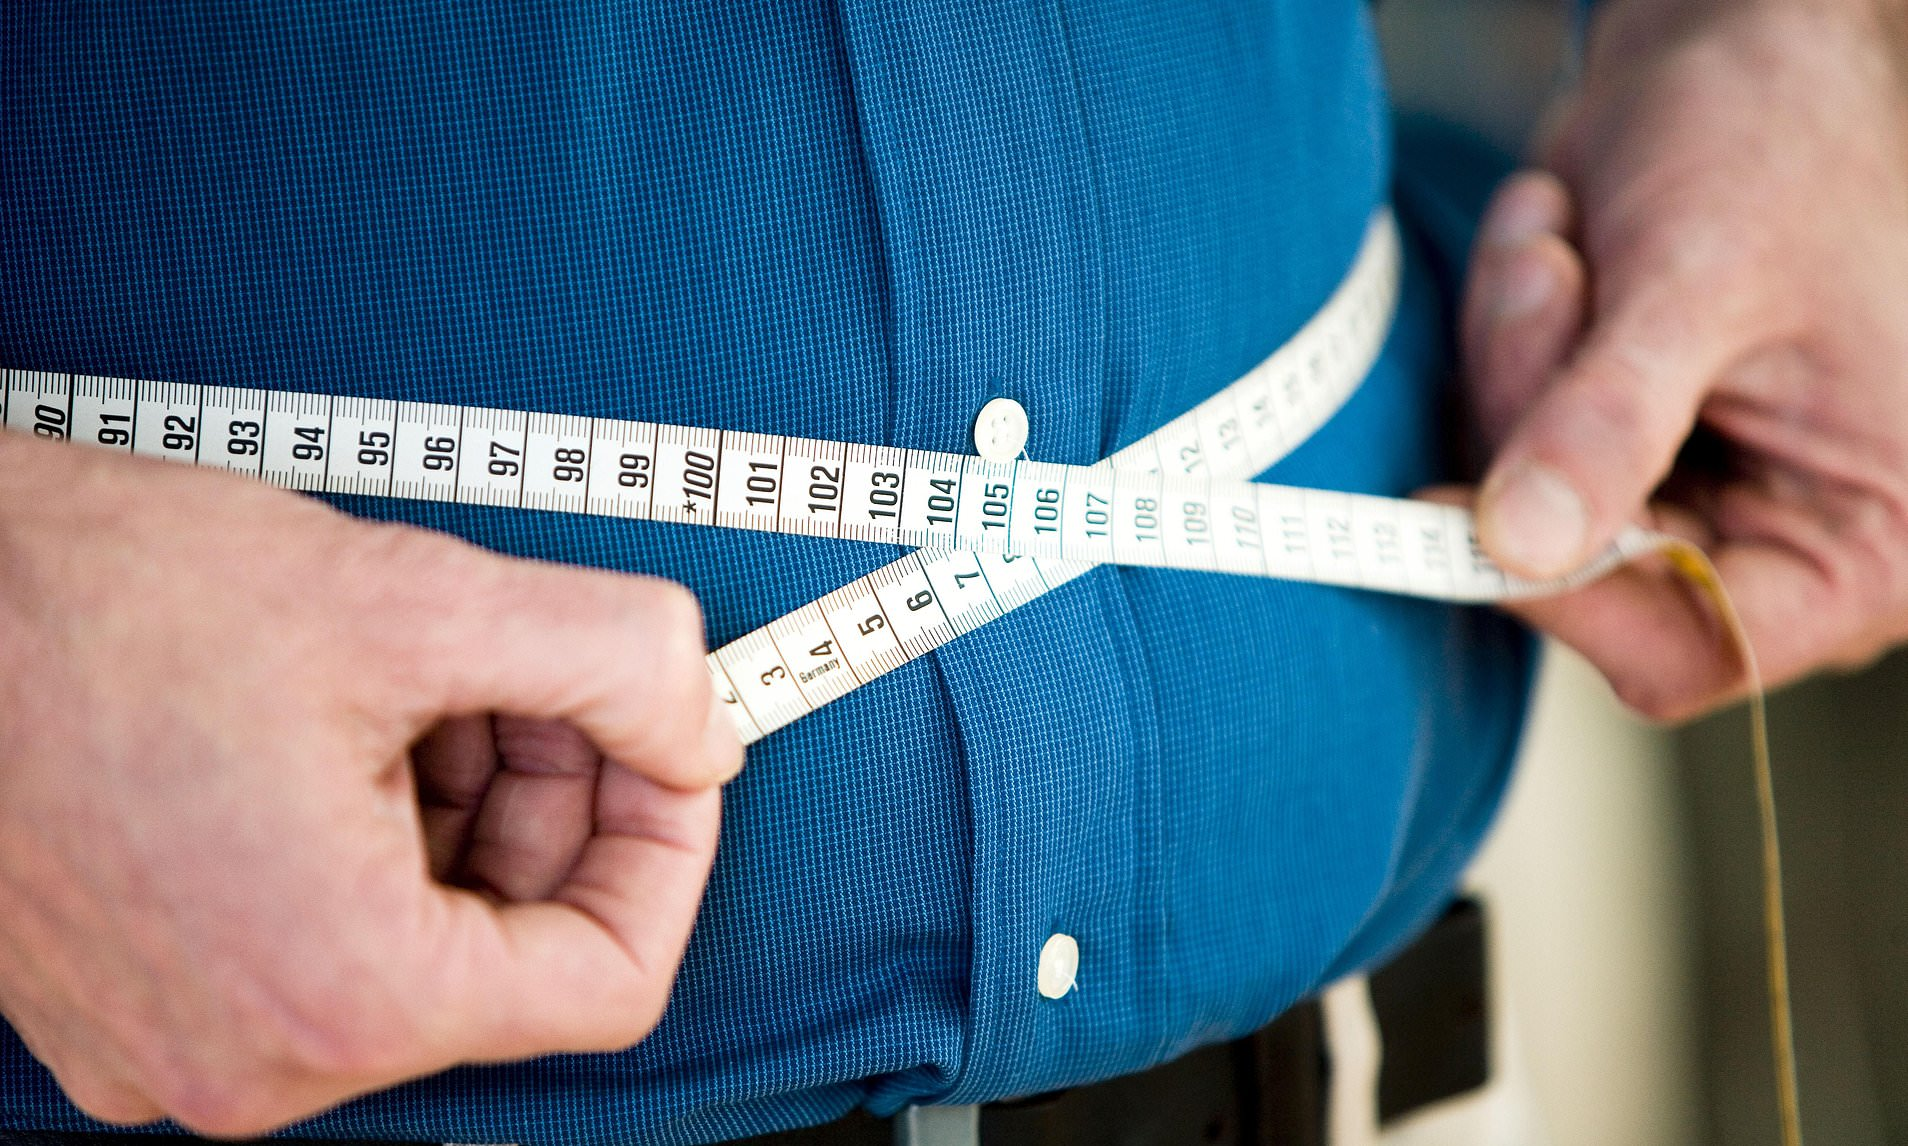 Obesity and IBD Linked to Higher Dementia Risk